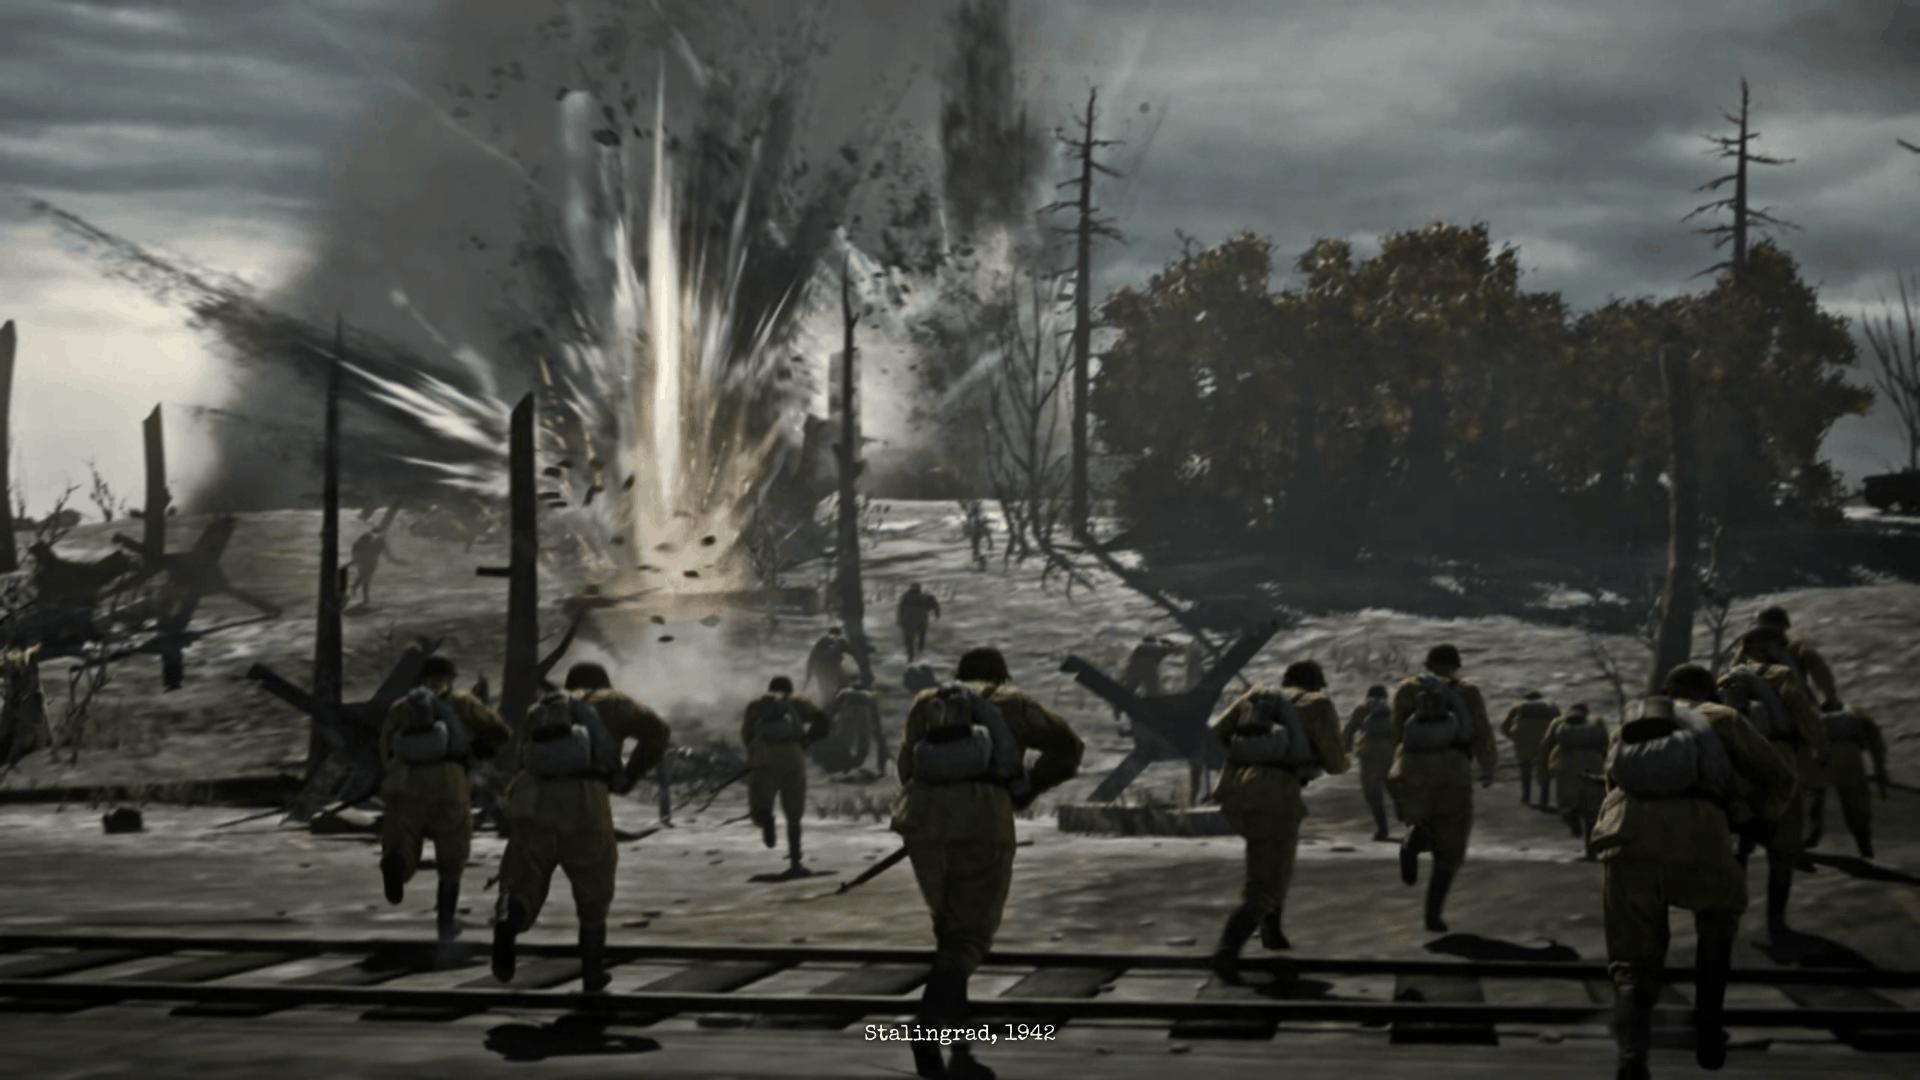 Wallpapers fond d 39 ecran pour company of heroes 2 pc 2013 for Image pour ecran